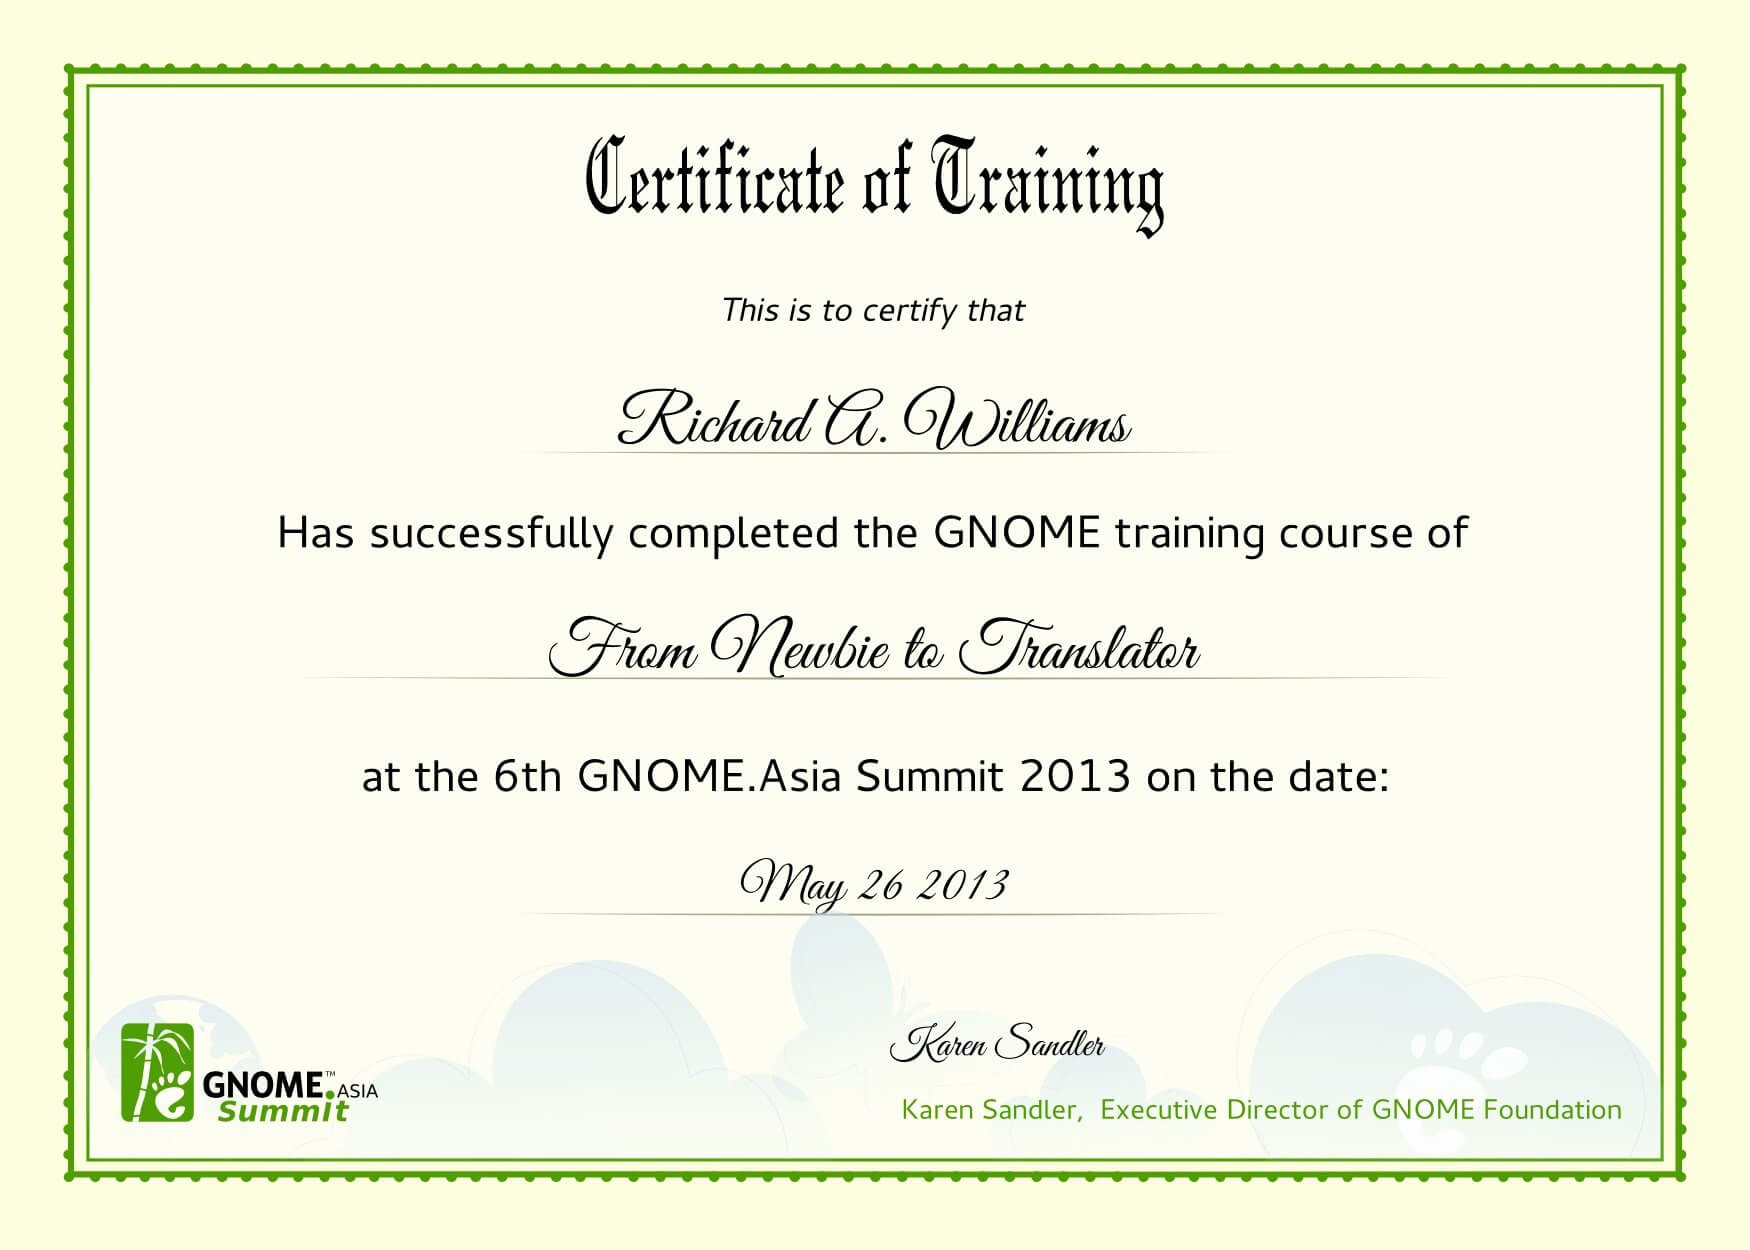 30 Forklift Training Certificate Template   Pryncepality pertaining to Forklift Certification Template